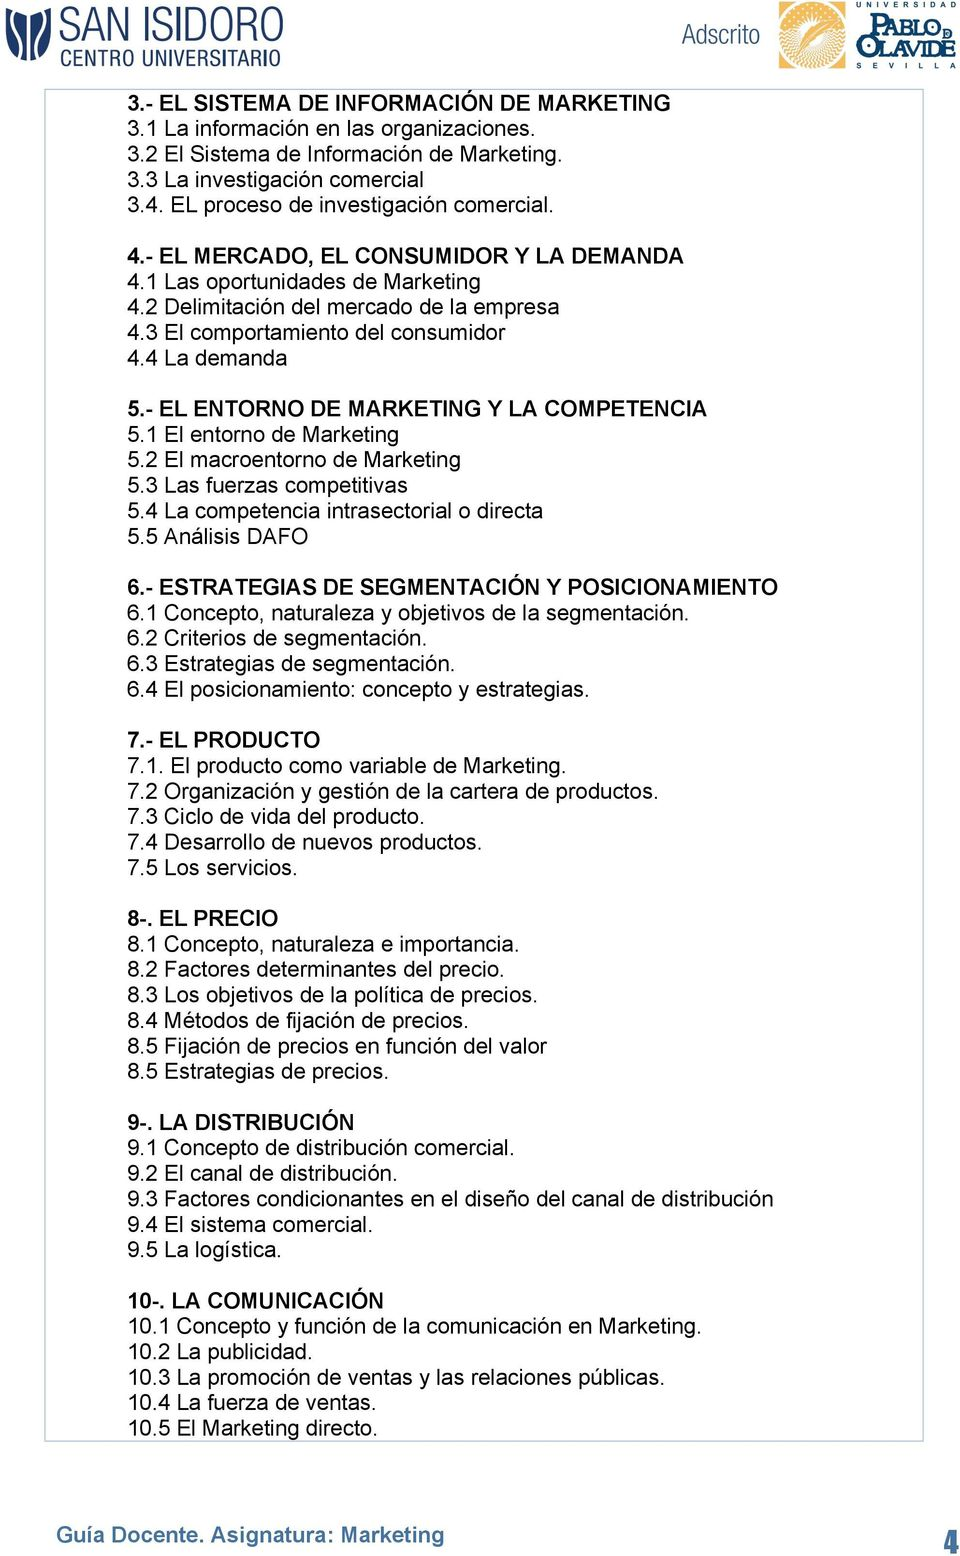 4 La demanda 5.- EL ENTORNO DE MARKETING Y LA COMPETENCIA 5.1 El entorno de Marketing 5.2 El macroentorno de Marketing 5.3 Las fuerzas competitivas 5.4 La competencia intrasectorial o directa 5.